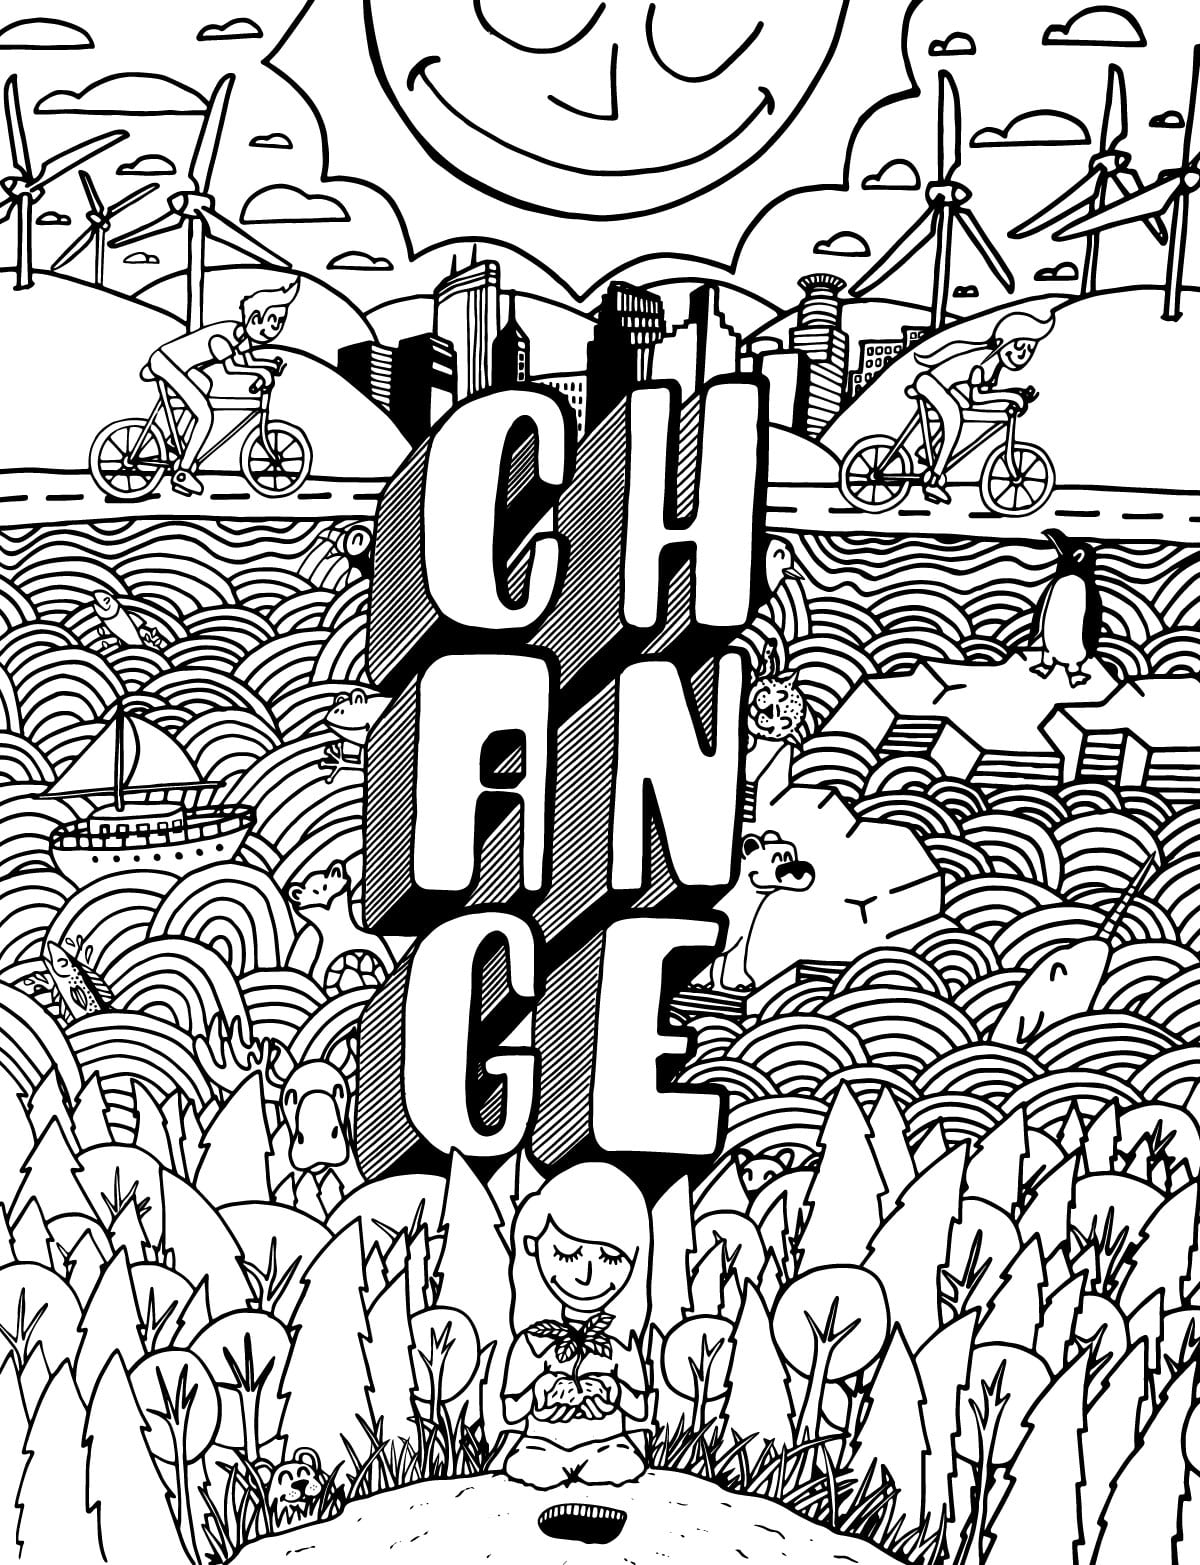 Climate Change coloring book page